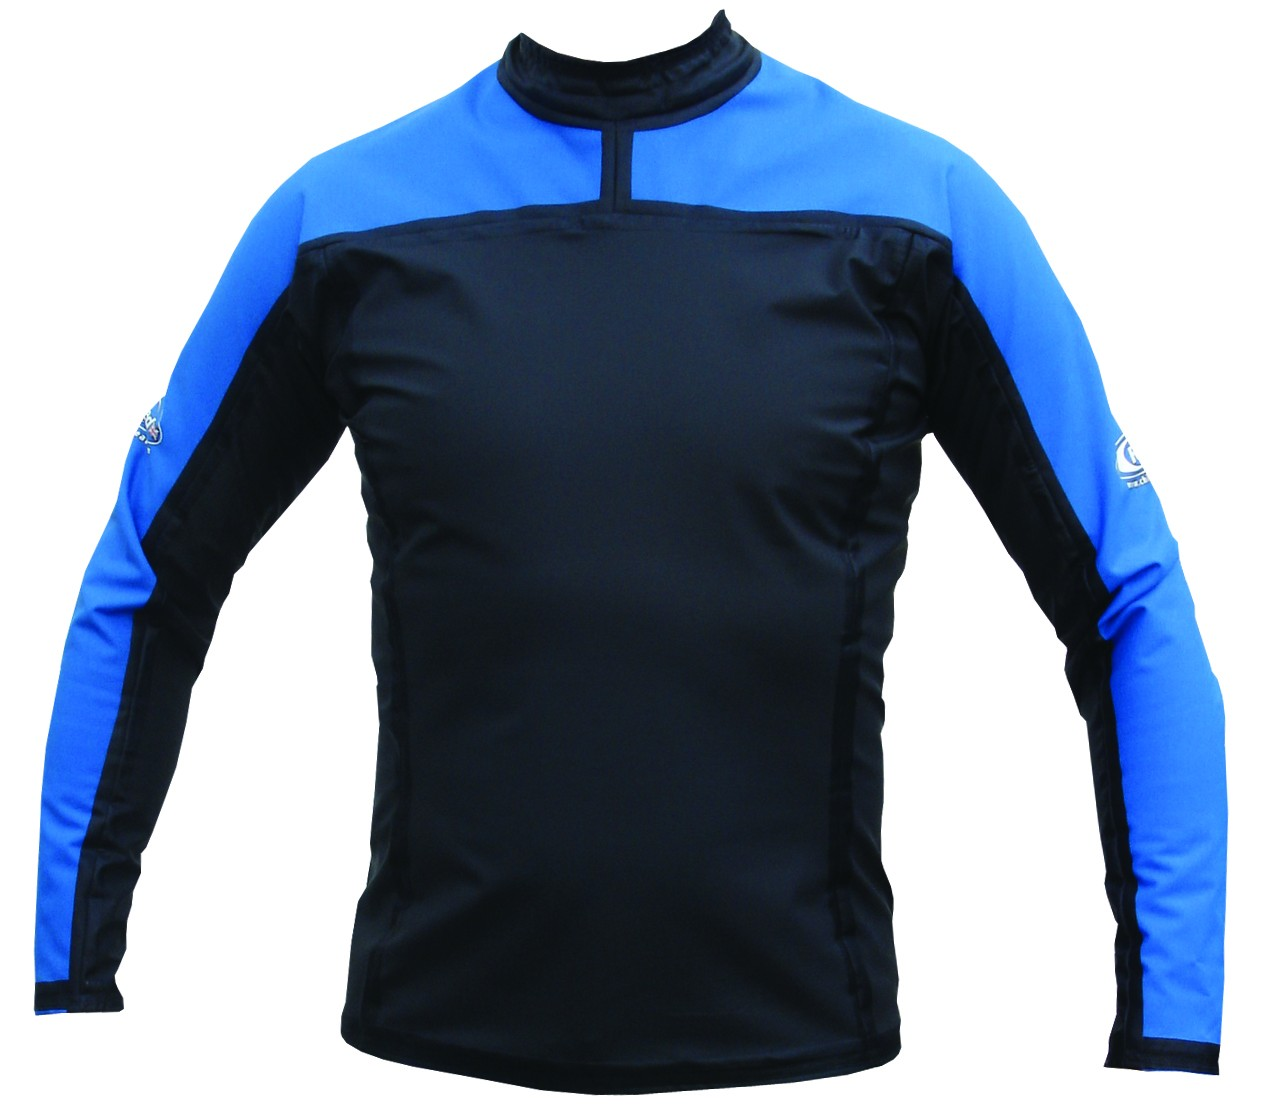 Aquatherm Mens L/SLEEVE TOP